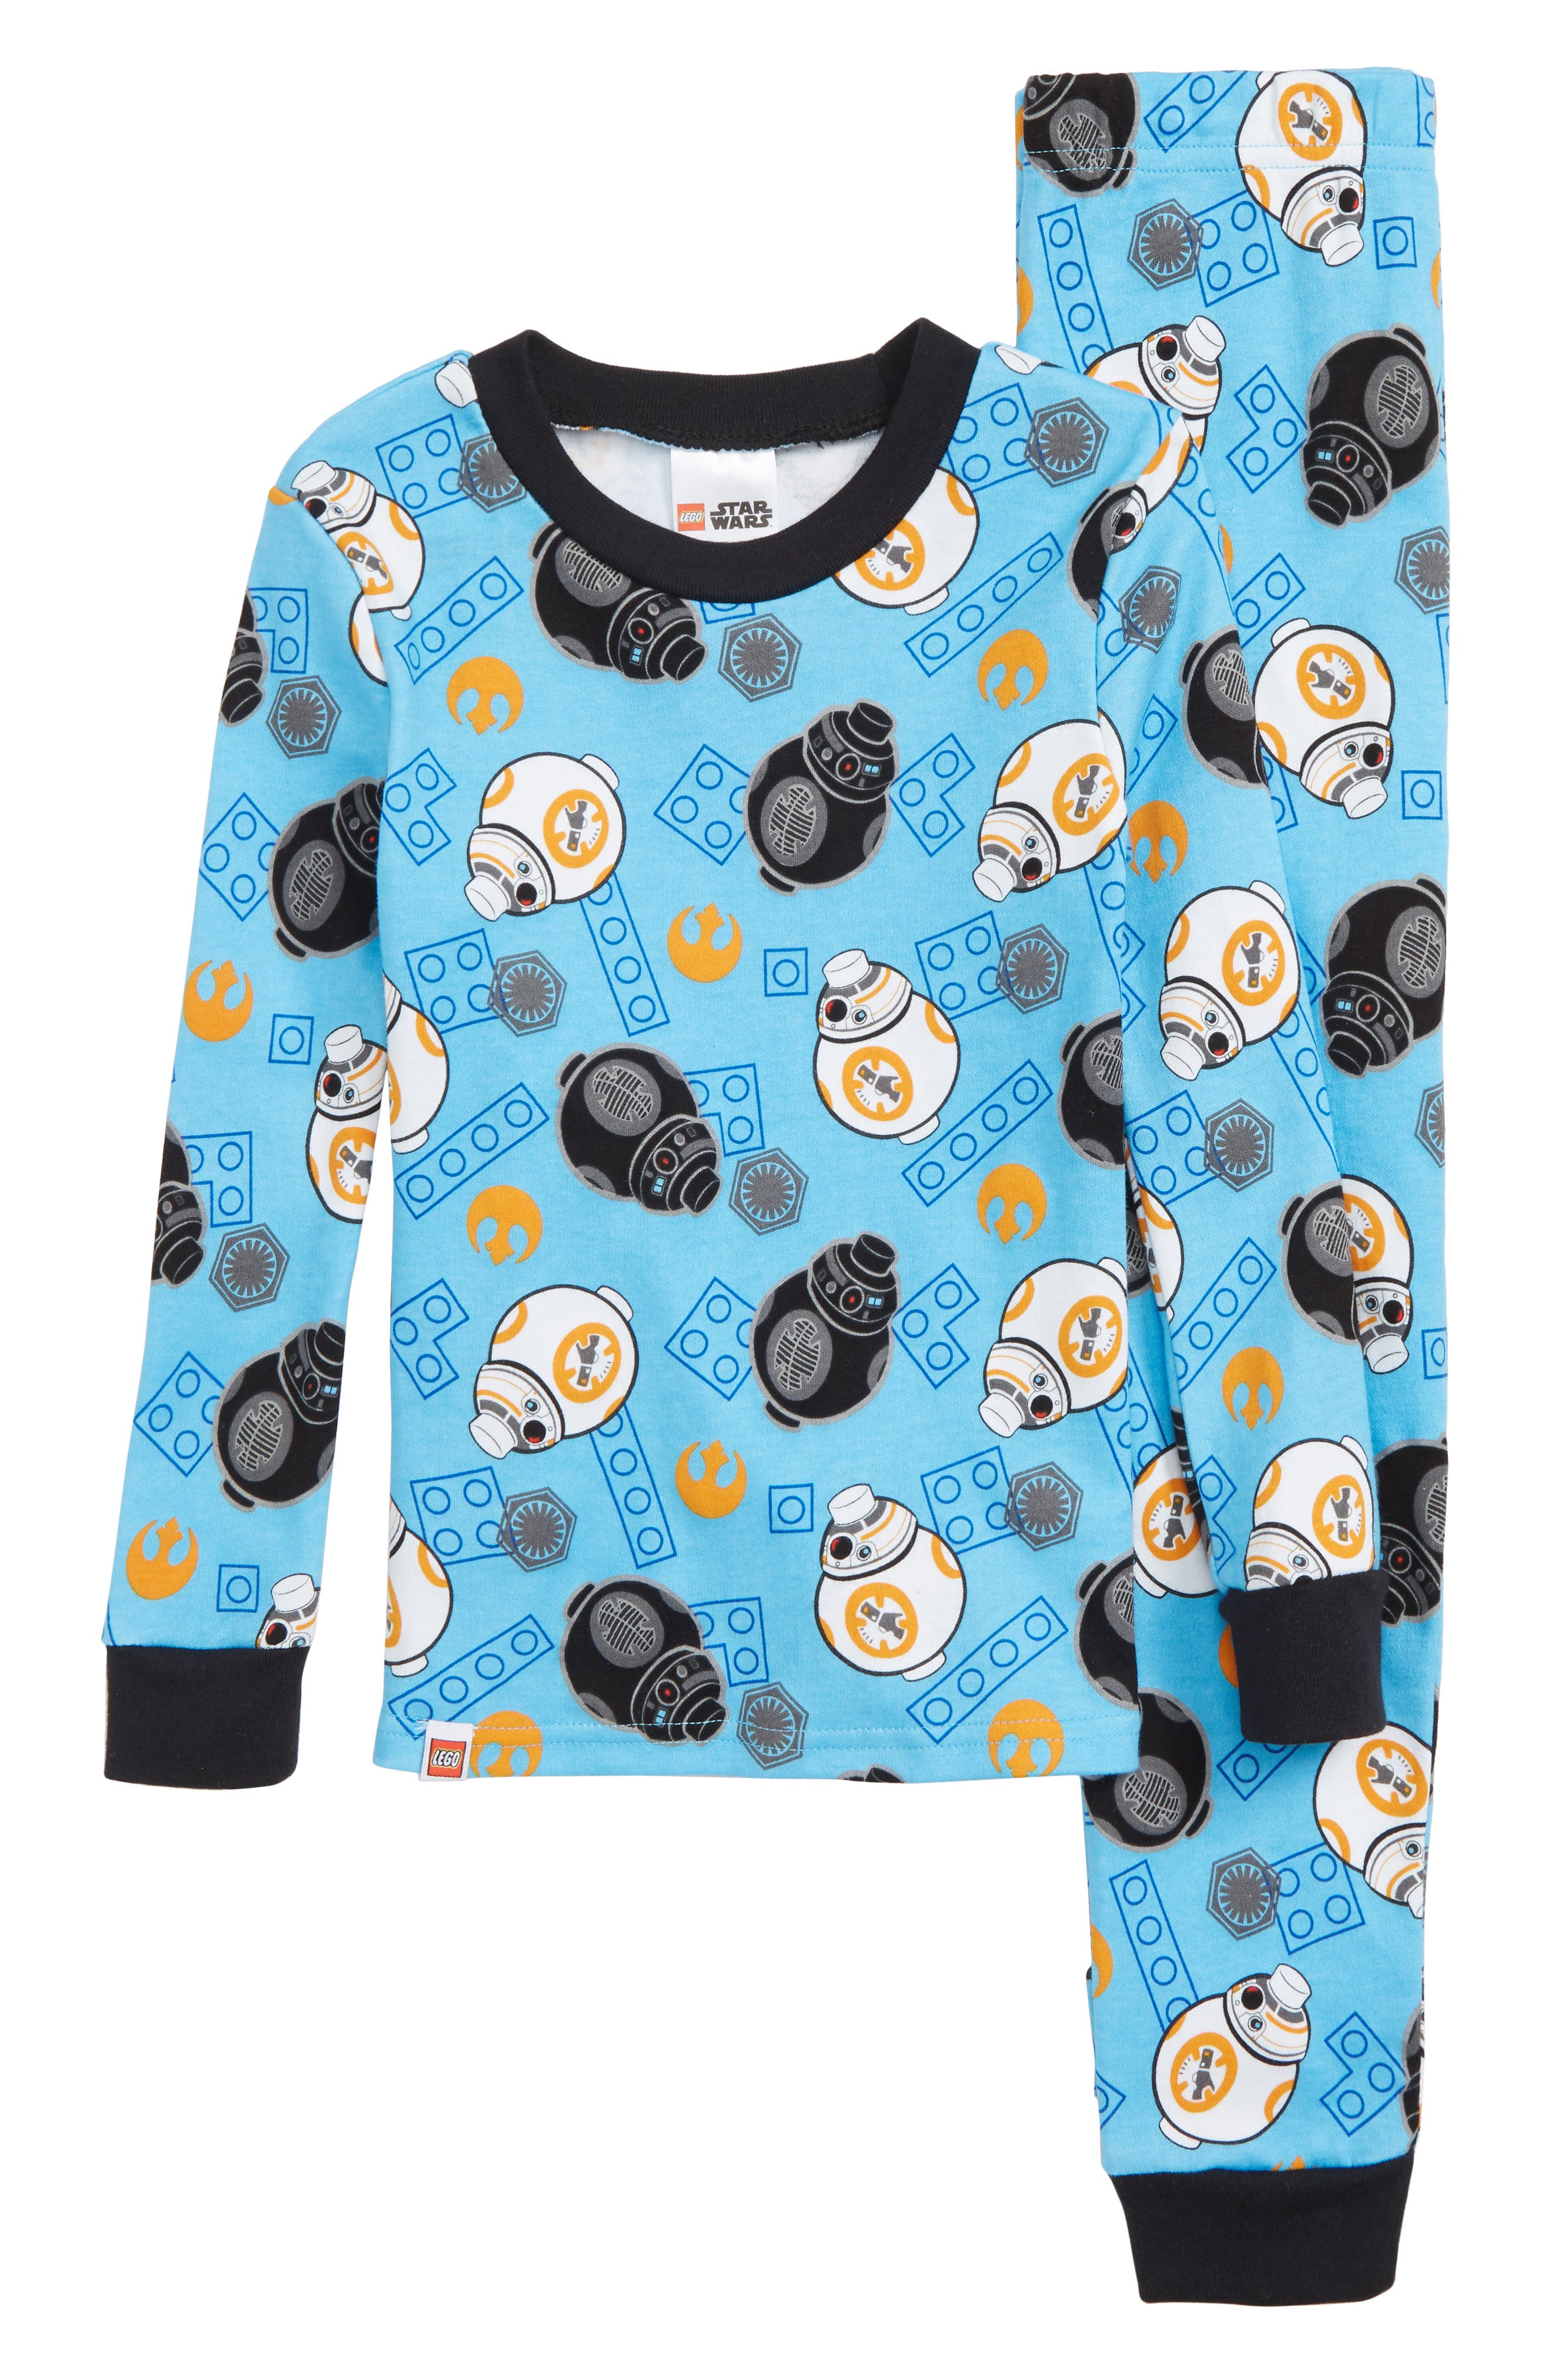 x Star Wars<sup>™</sup> Fitted Two-Piece Pajamas,                         Main,                         color, BLUE